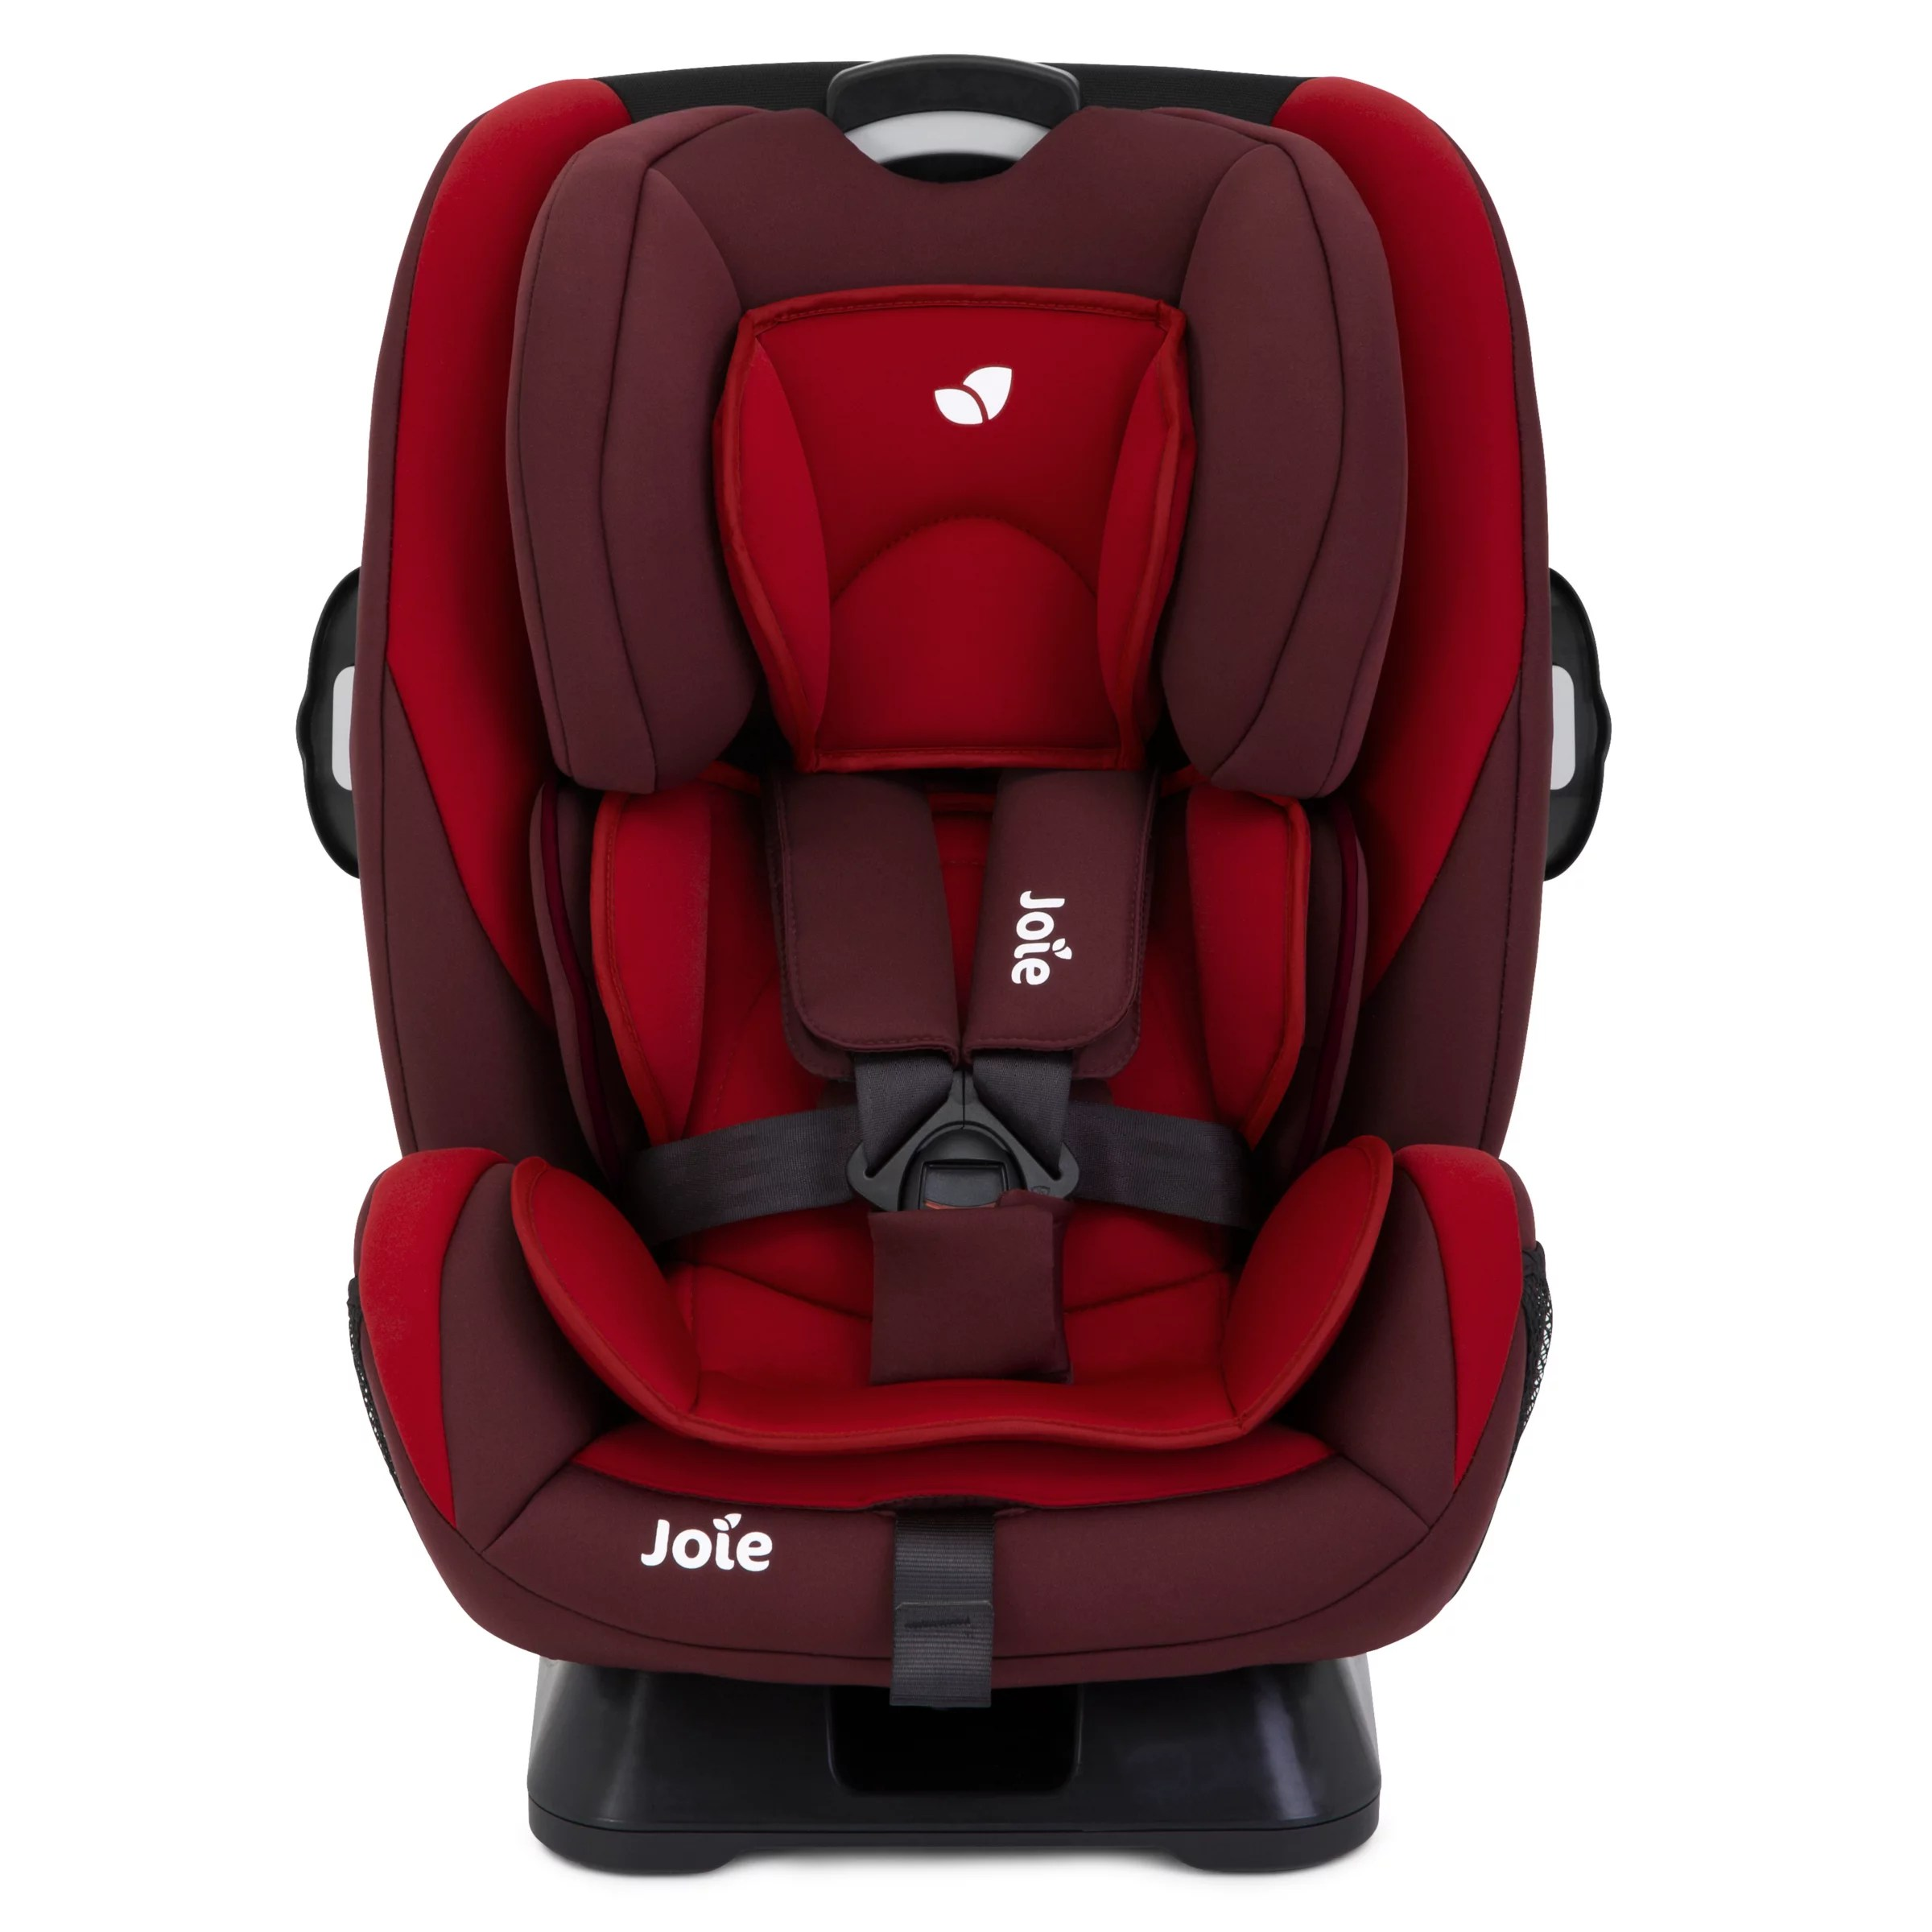 Joie 360 Isofix Installation Joie Every Stage Group 1 2 3 Car Seat Red